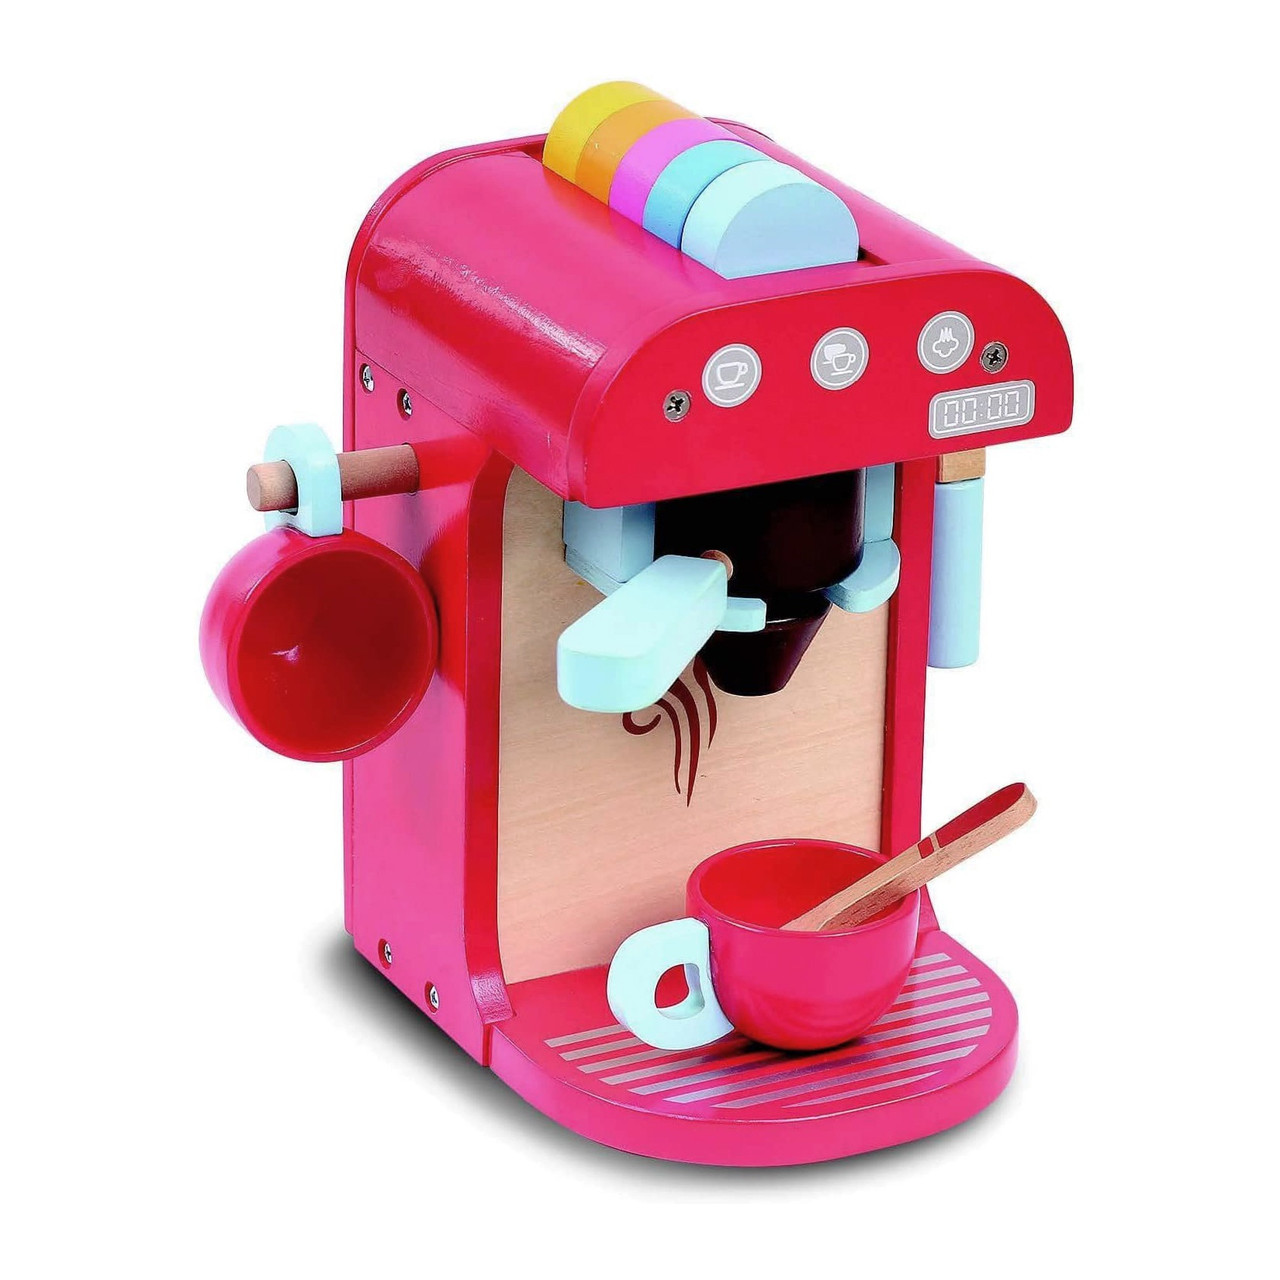 Bubbadoo Wooden Toy Coffee Machine   Baby Barn Discounts For any young barista, the Bubbadoo Wooden Coffee Machine is a great addition to your child's roleplay time.